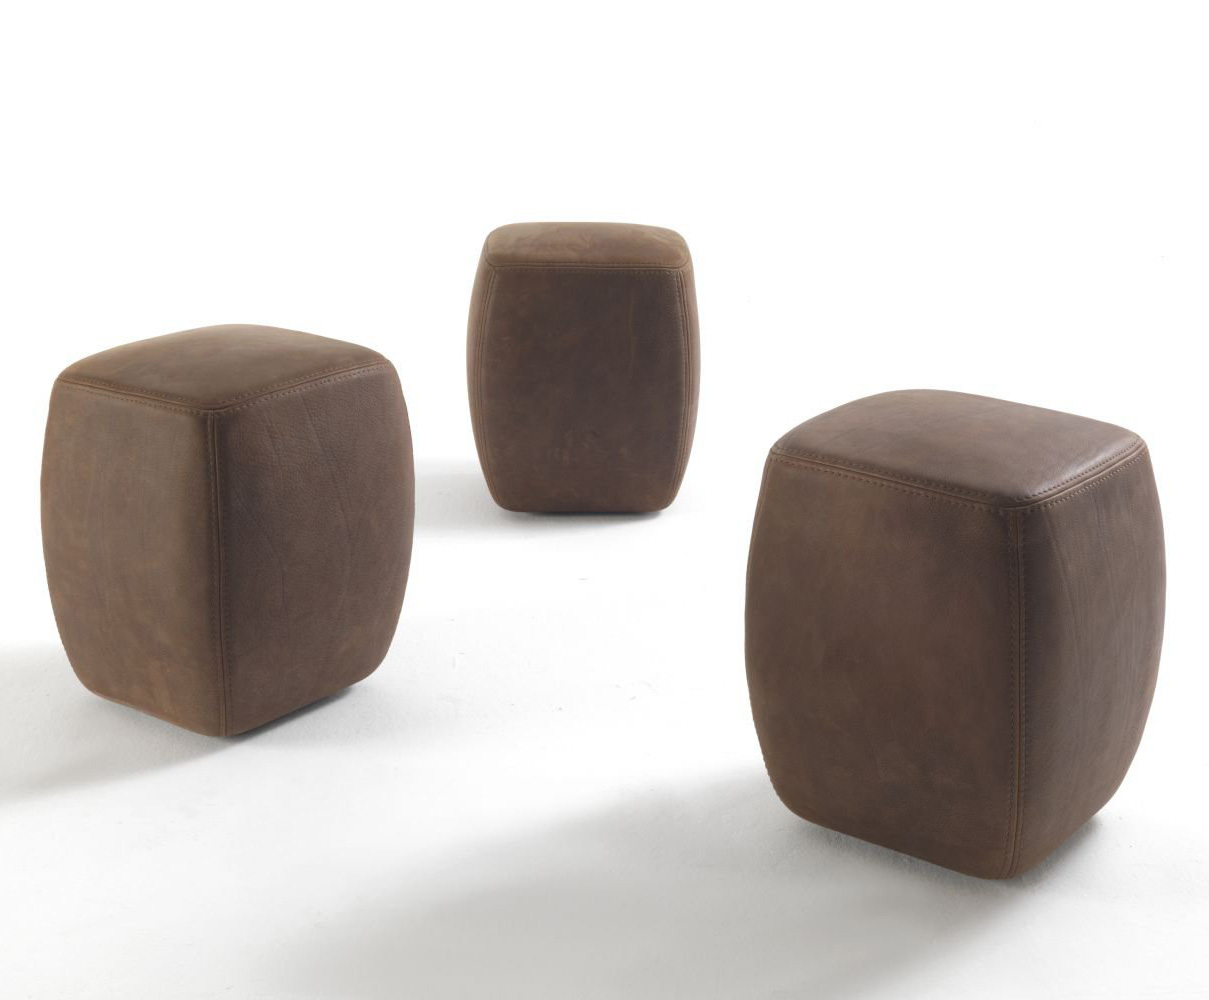 Betty Pouf & Betty Pouf Small stool from Riva 1920, designed by Terry Dwan